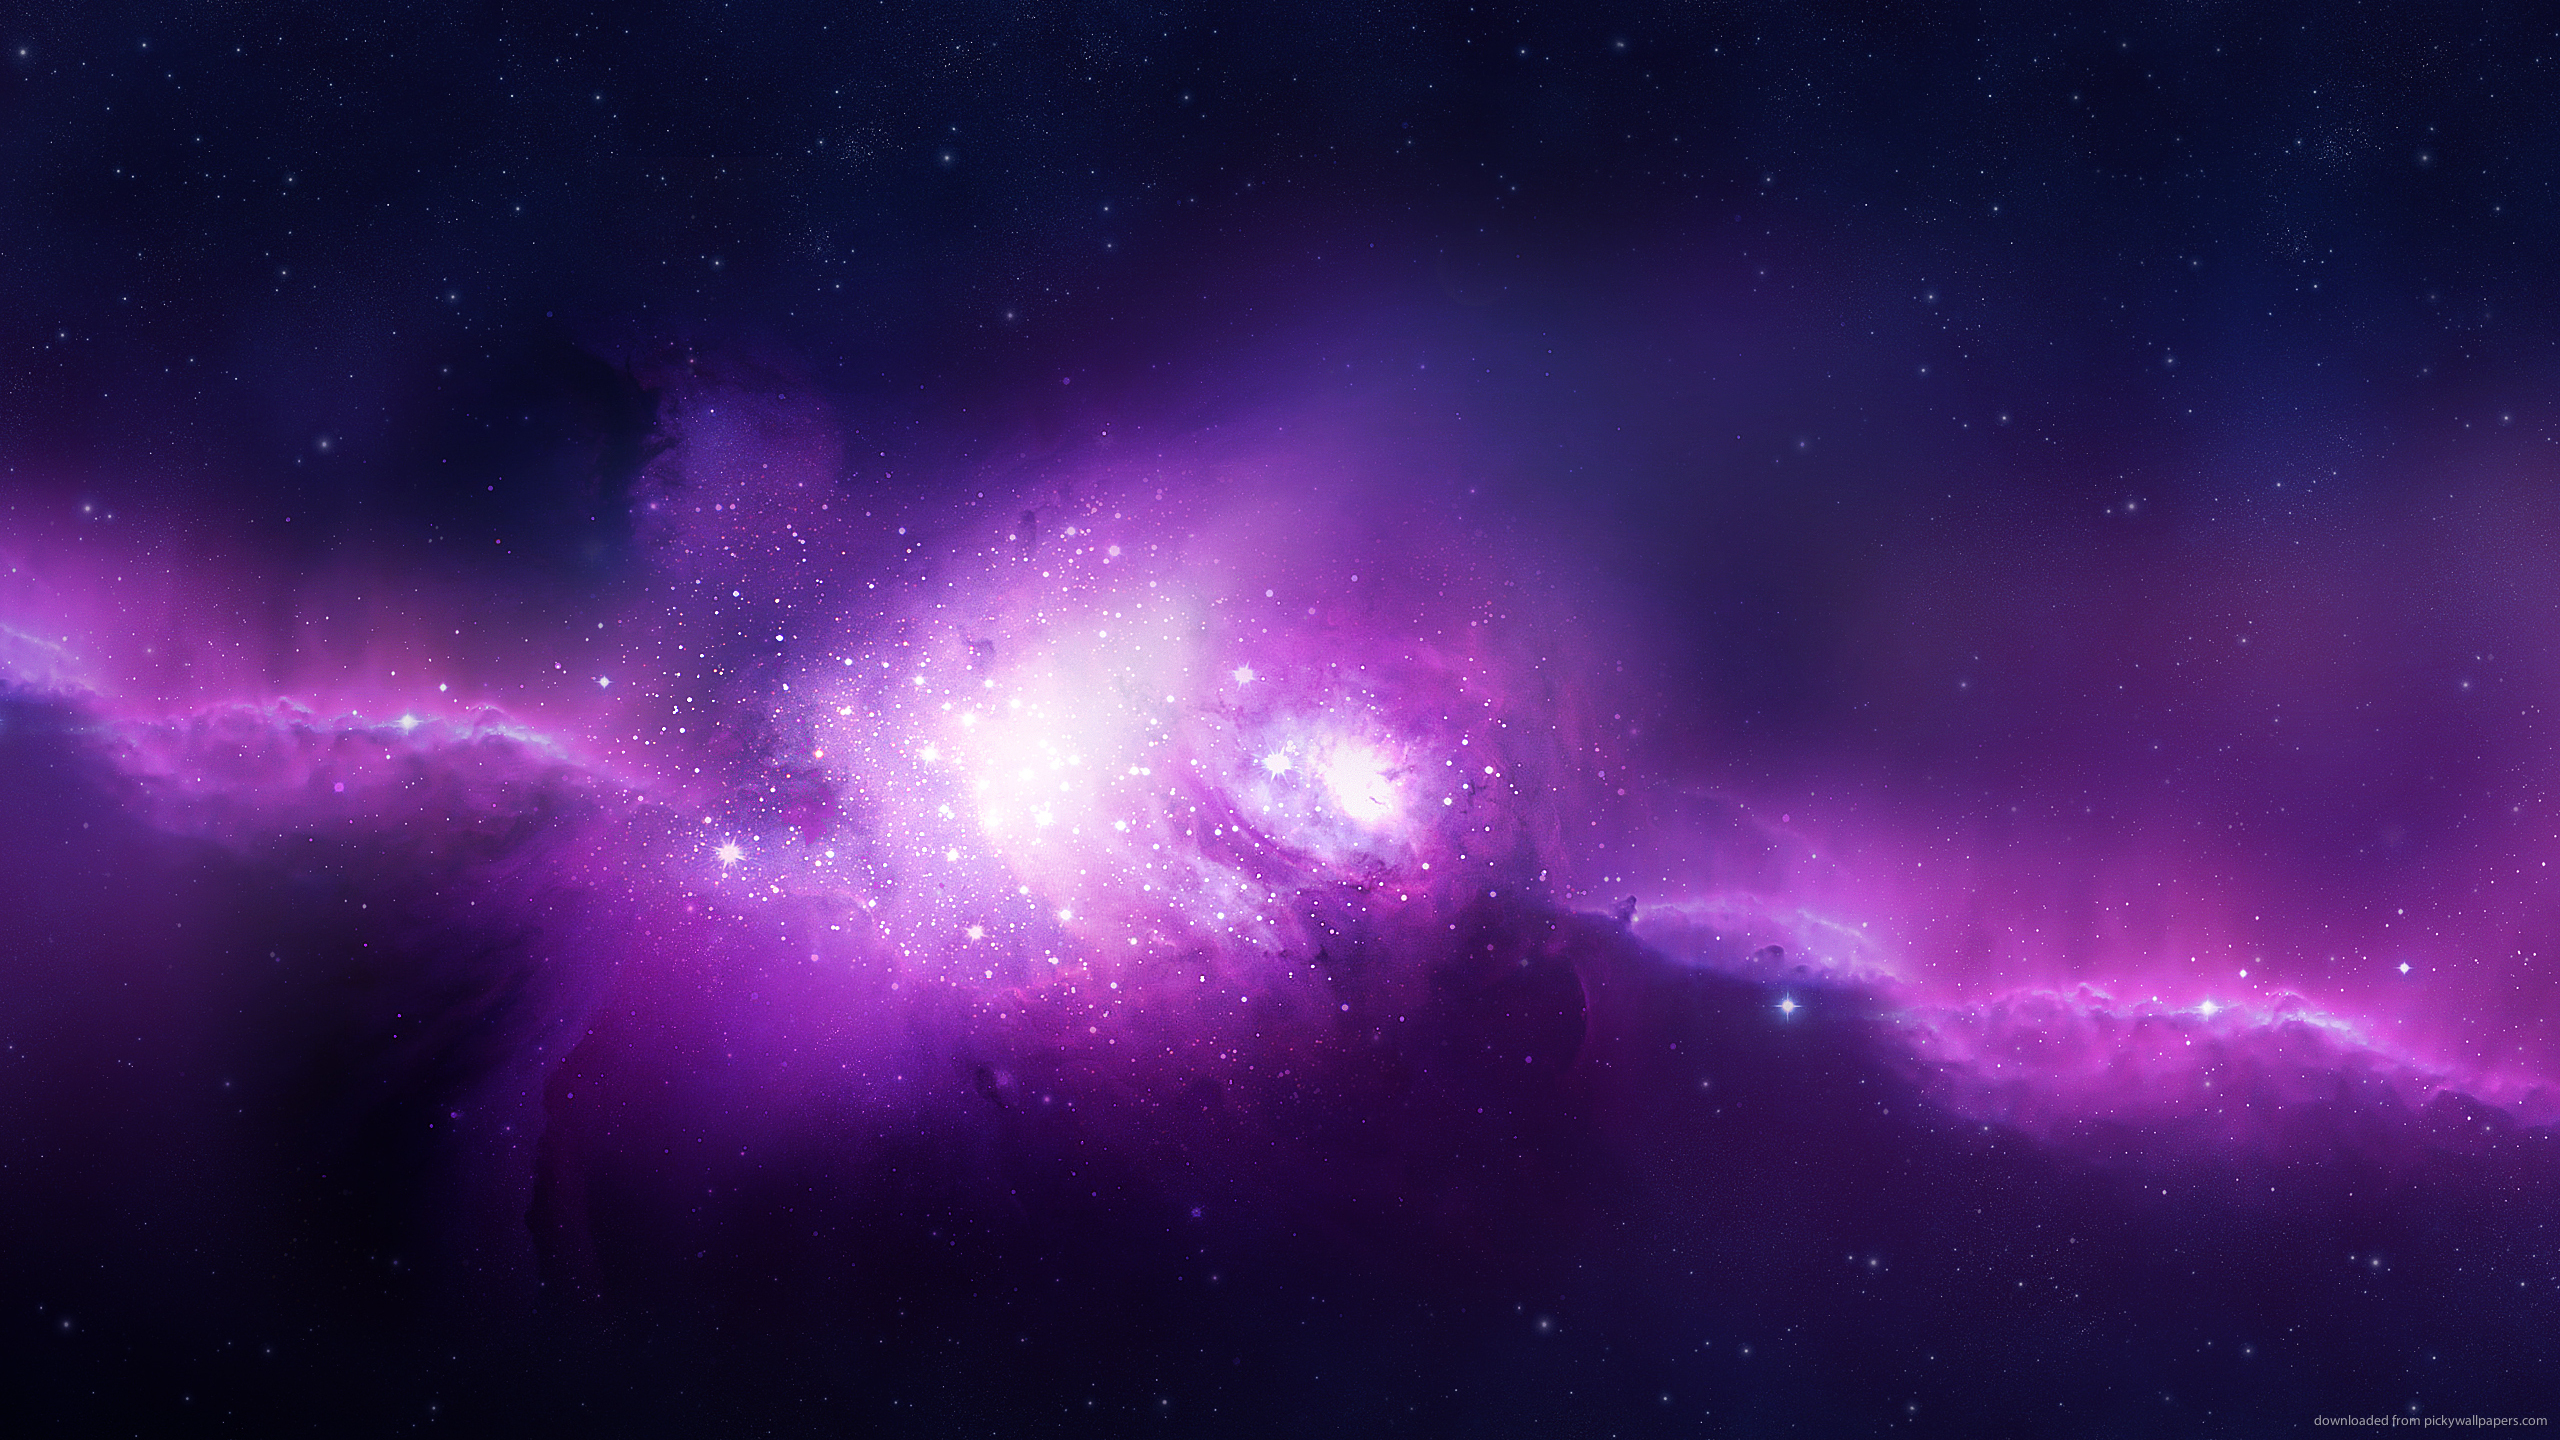 Download 2560x1440 Purple Space Wallpaper 2560x1440